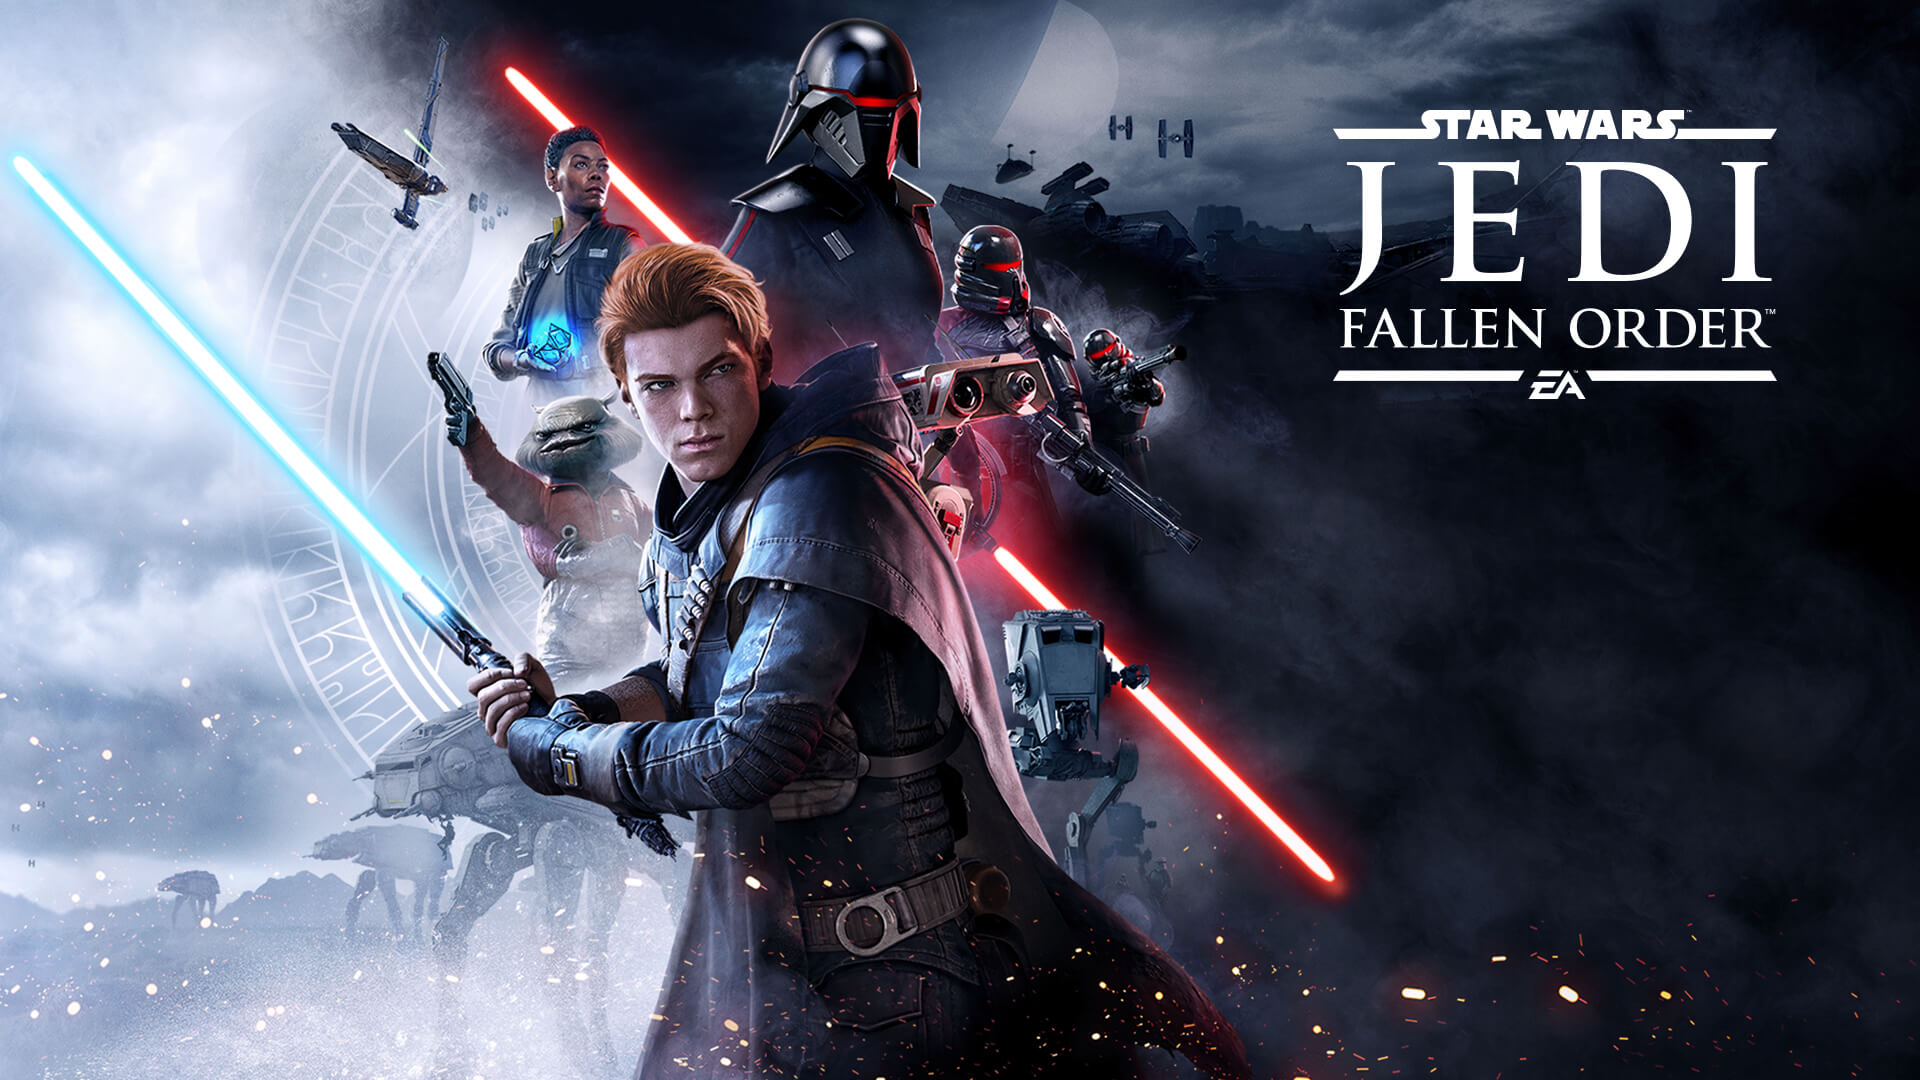 Buy Star Wars Jedi Fallen Order Get The Fortnite Imperial Stormtrooper Outfit Free